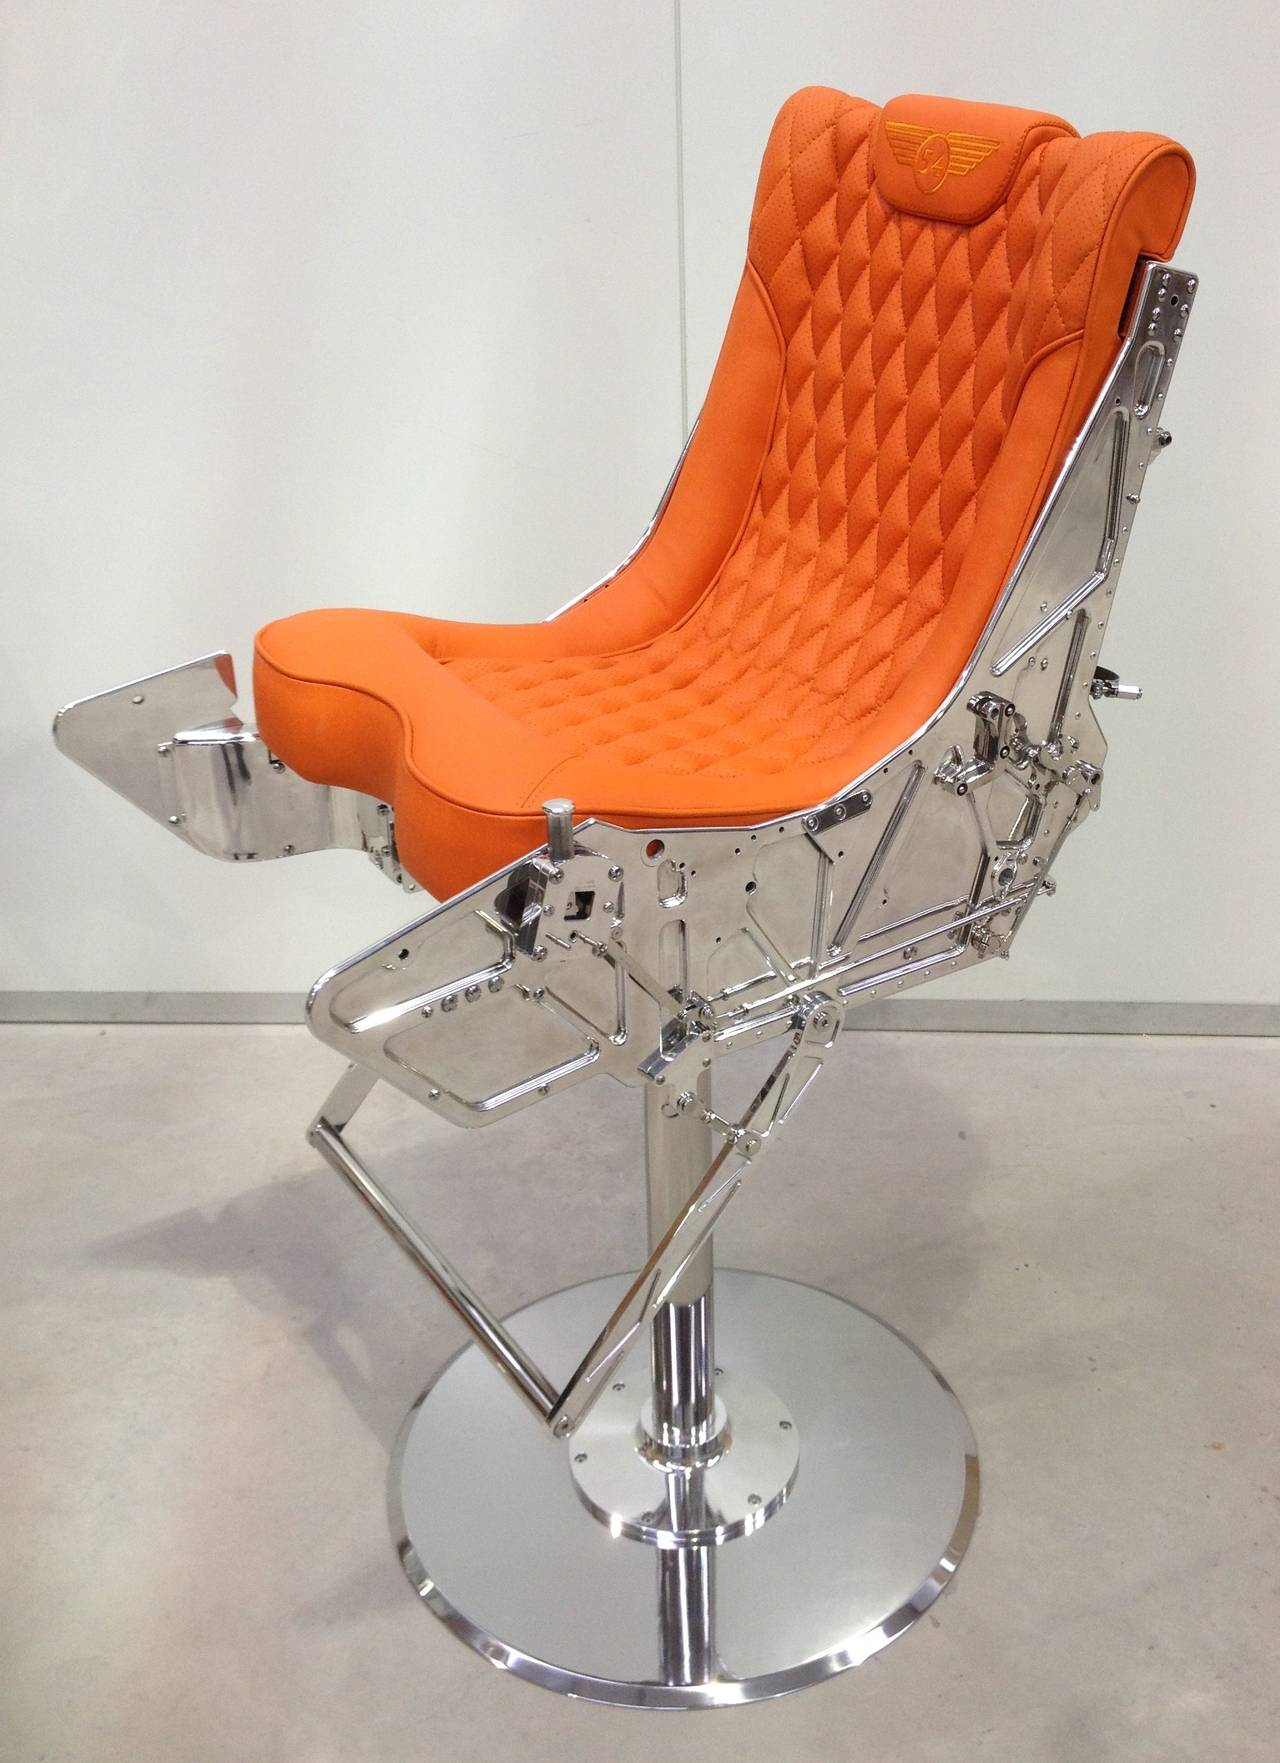 Martin Baker Mk10 Ejection Seat Barstool For Sale At 1stdibs